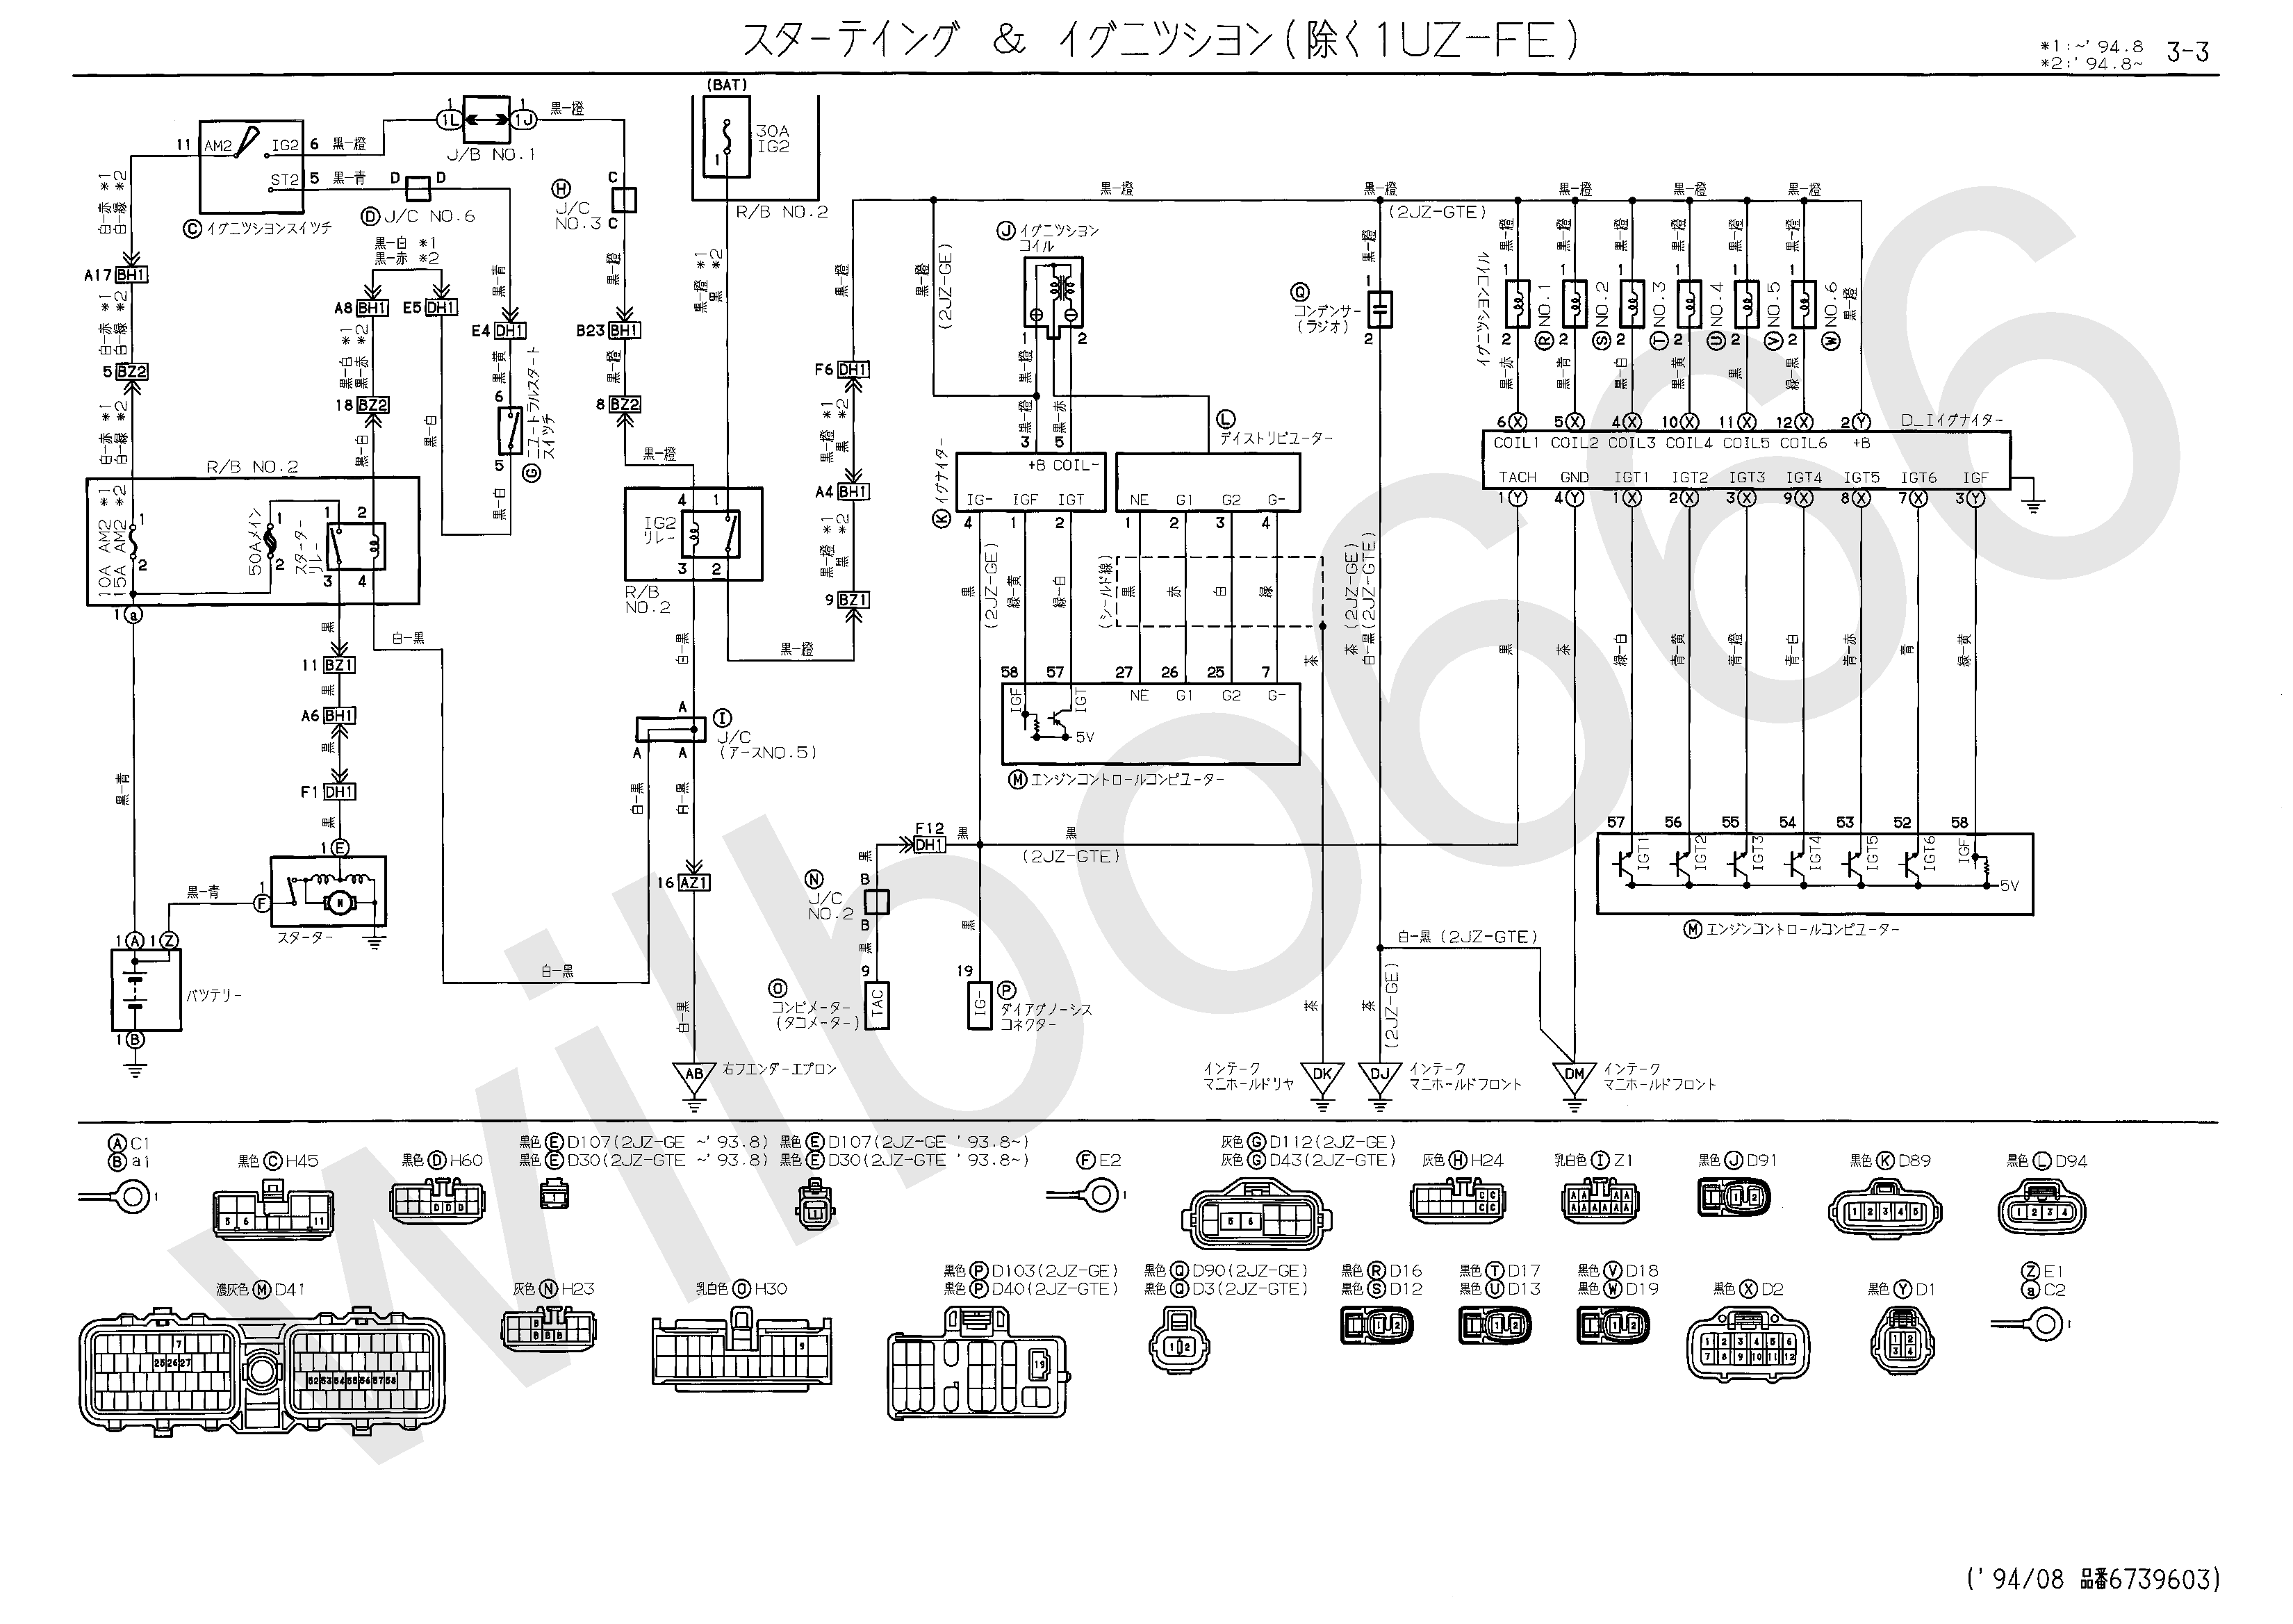 JZS14%23%2C UZS14%23 Electrical Wiring Diagram 6739604 3 3?resize\\\\\\\\\\\\\\\\\\\\\\\\\\\\\\\\\\\\\\\\\\\\\\\\\\\\\\\\\\\\\\\\\\\\\\\\\\\\\\\\\\\\\\\\\\\\\\\\\\\\\\\\\\\\\\\\\\\\\\\\\\\\\\\\\\\\\\\\\\\\\\\\\\\\\\\\\\\\\\\\\\\\\\\\\\\\\\\\\\\\\\\\\\\\\\\\\\\\\\\\\\\\\\\\\\\\\\\\\\\\\\\\\\\\\\\\\\\\\\\\\\\\\\\\\\\\\\\\\\\\\\\\\\\\\\\\\\\\\\\\\\\\\\\\\\\\\\\\\\\\\\\\\\\\\\\\\\\\\\\\\\\\\\\\\\\\\\\\\\\\\\\\\\\\\\\\\\\\\\\\\\\\\\\\\\\\\\\\\\\\\\\\\\\\\\\\\\\\\\\\\\\\\\\\\\\\\\\\\\\\\\\\\\\\\\\\\\\\\\\\\\\\\\\\\=665%2C471 rb26 wiring diagram rb26 wiring harness diagram \u2022 wiring diagrams  at panicattacktreatment.co